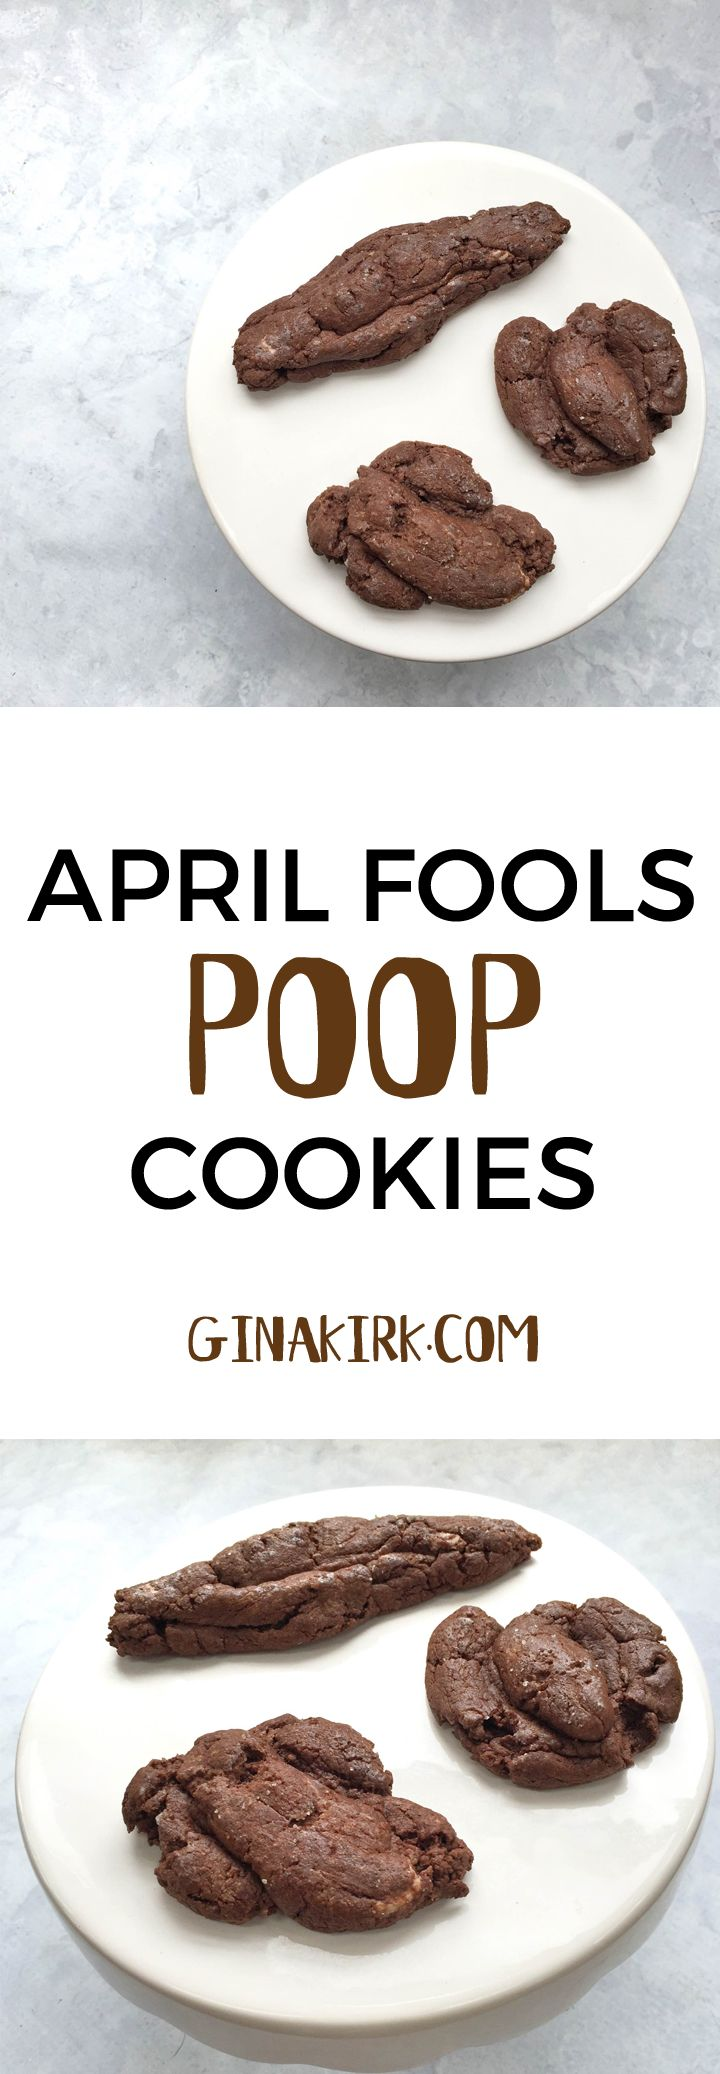 April fools' day poop cookies | poop cookie recipe | food pranks | April fools'…